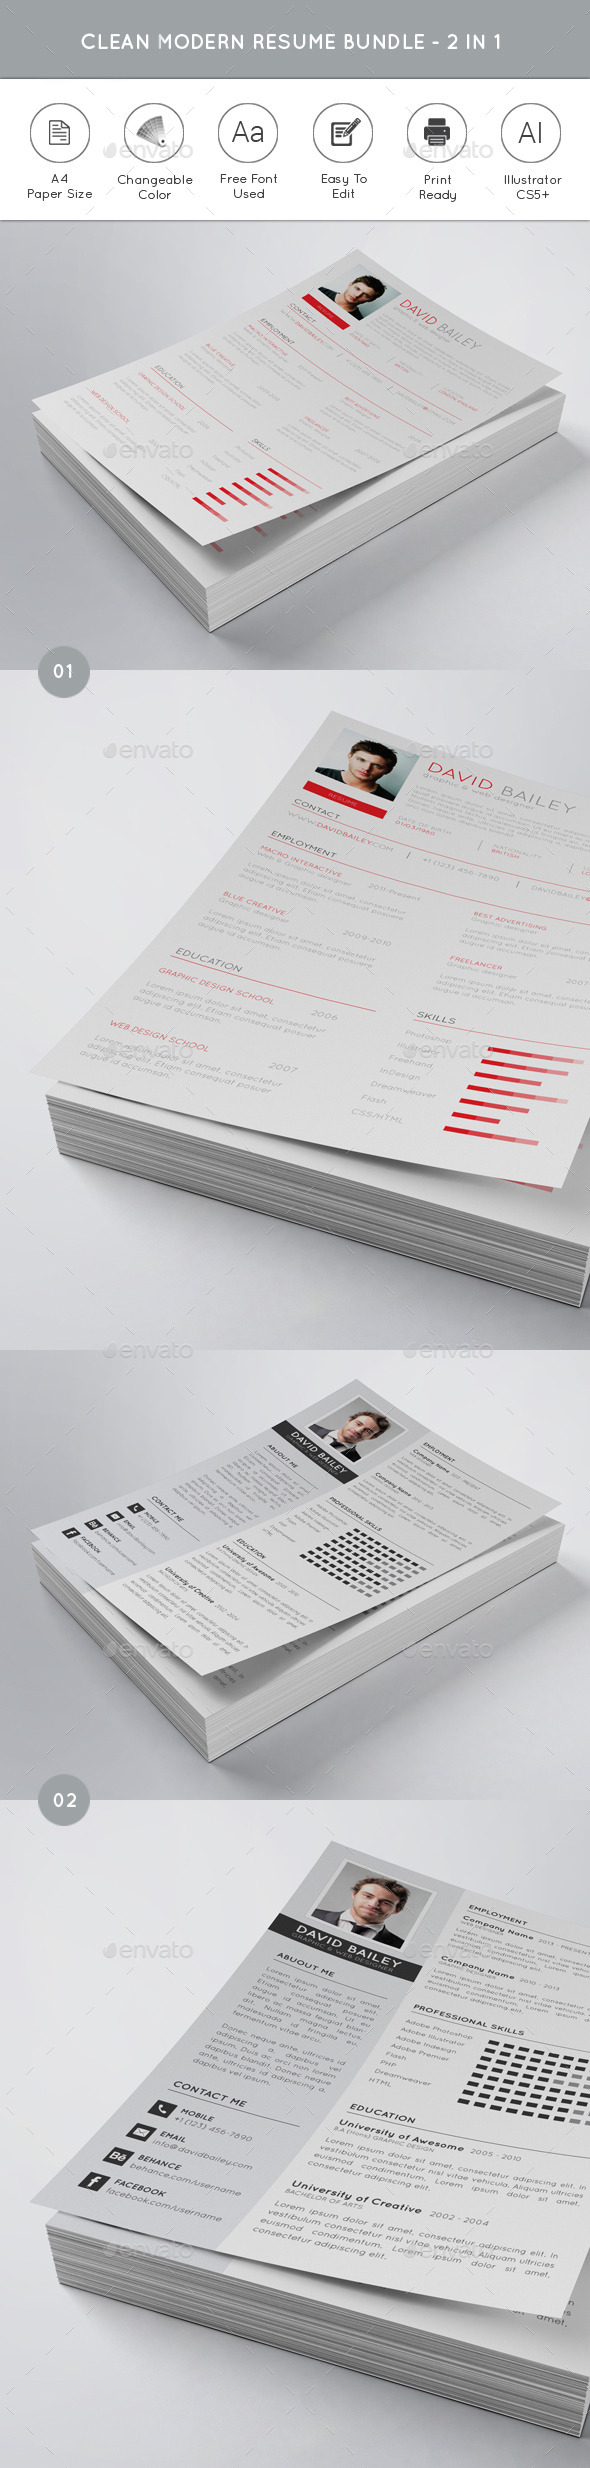 Clean Modern Resume Bundle 2 in 1